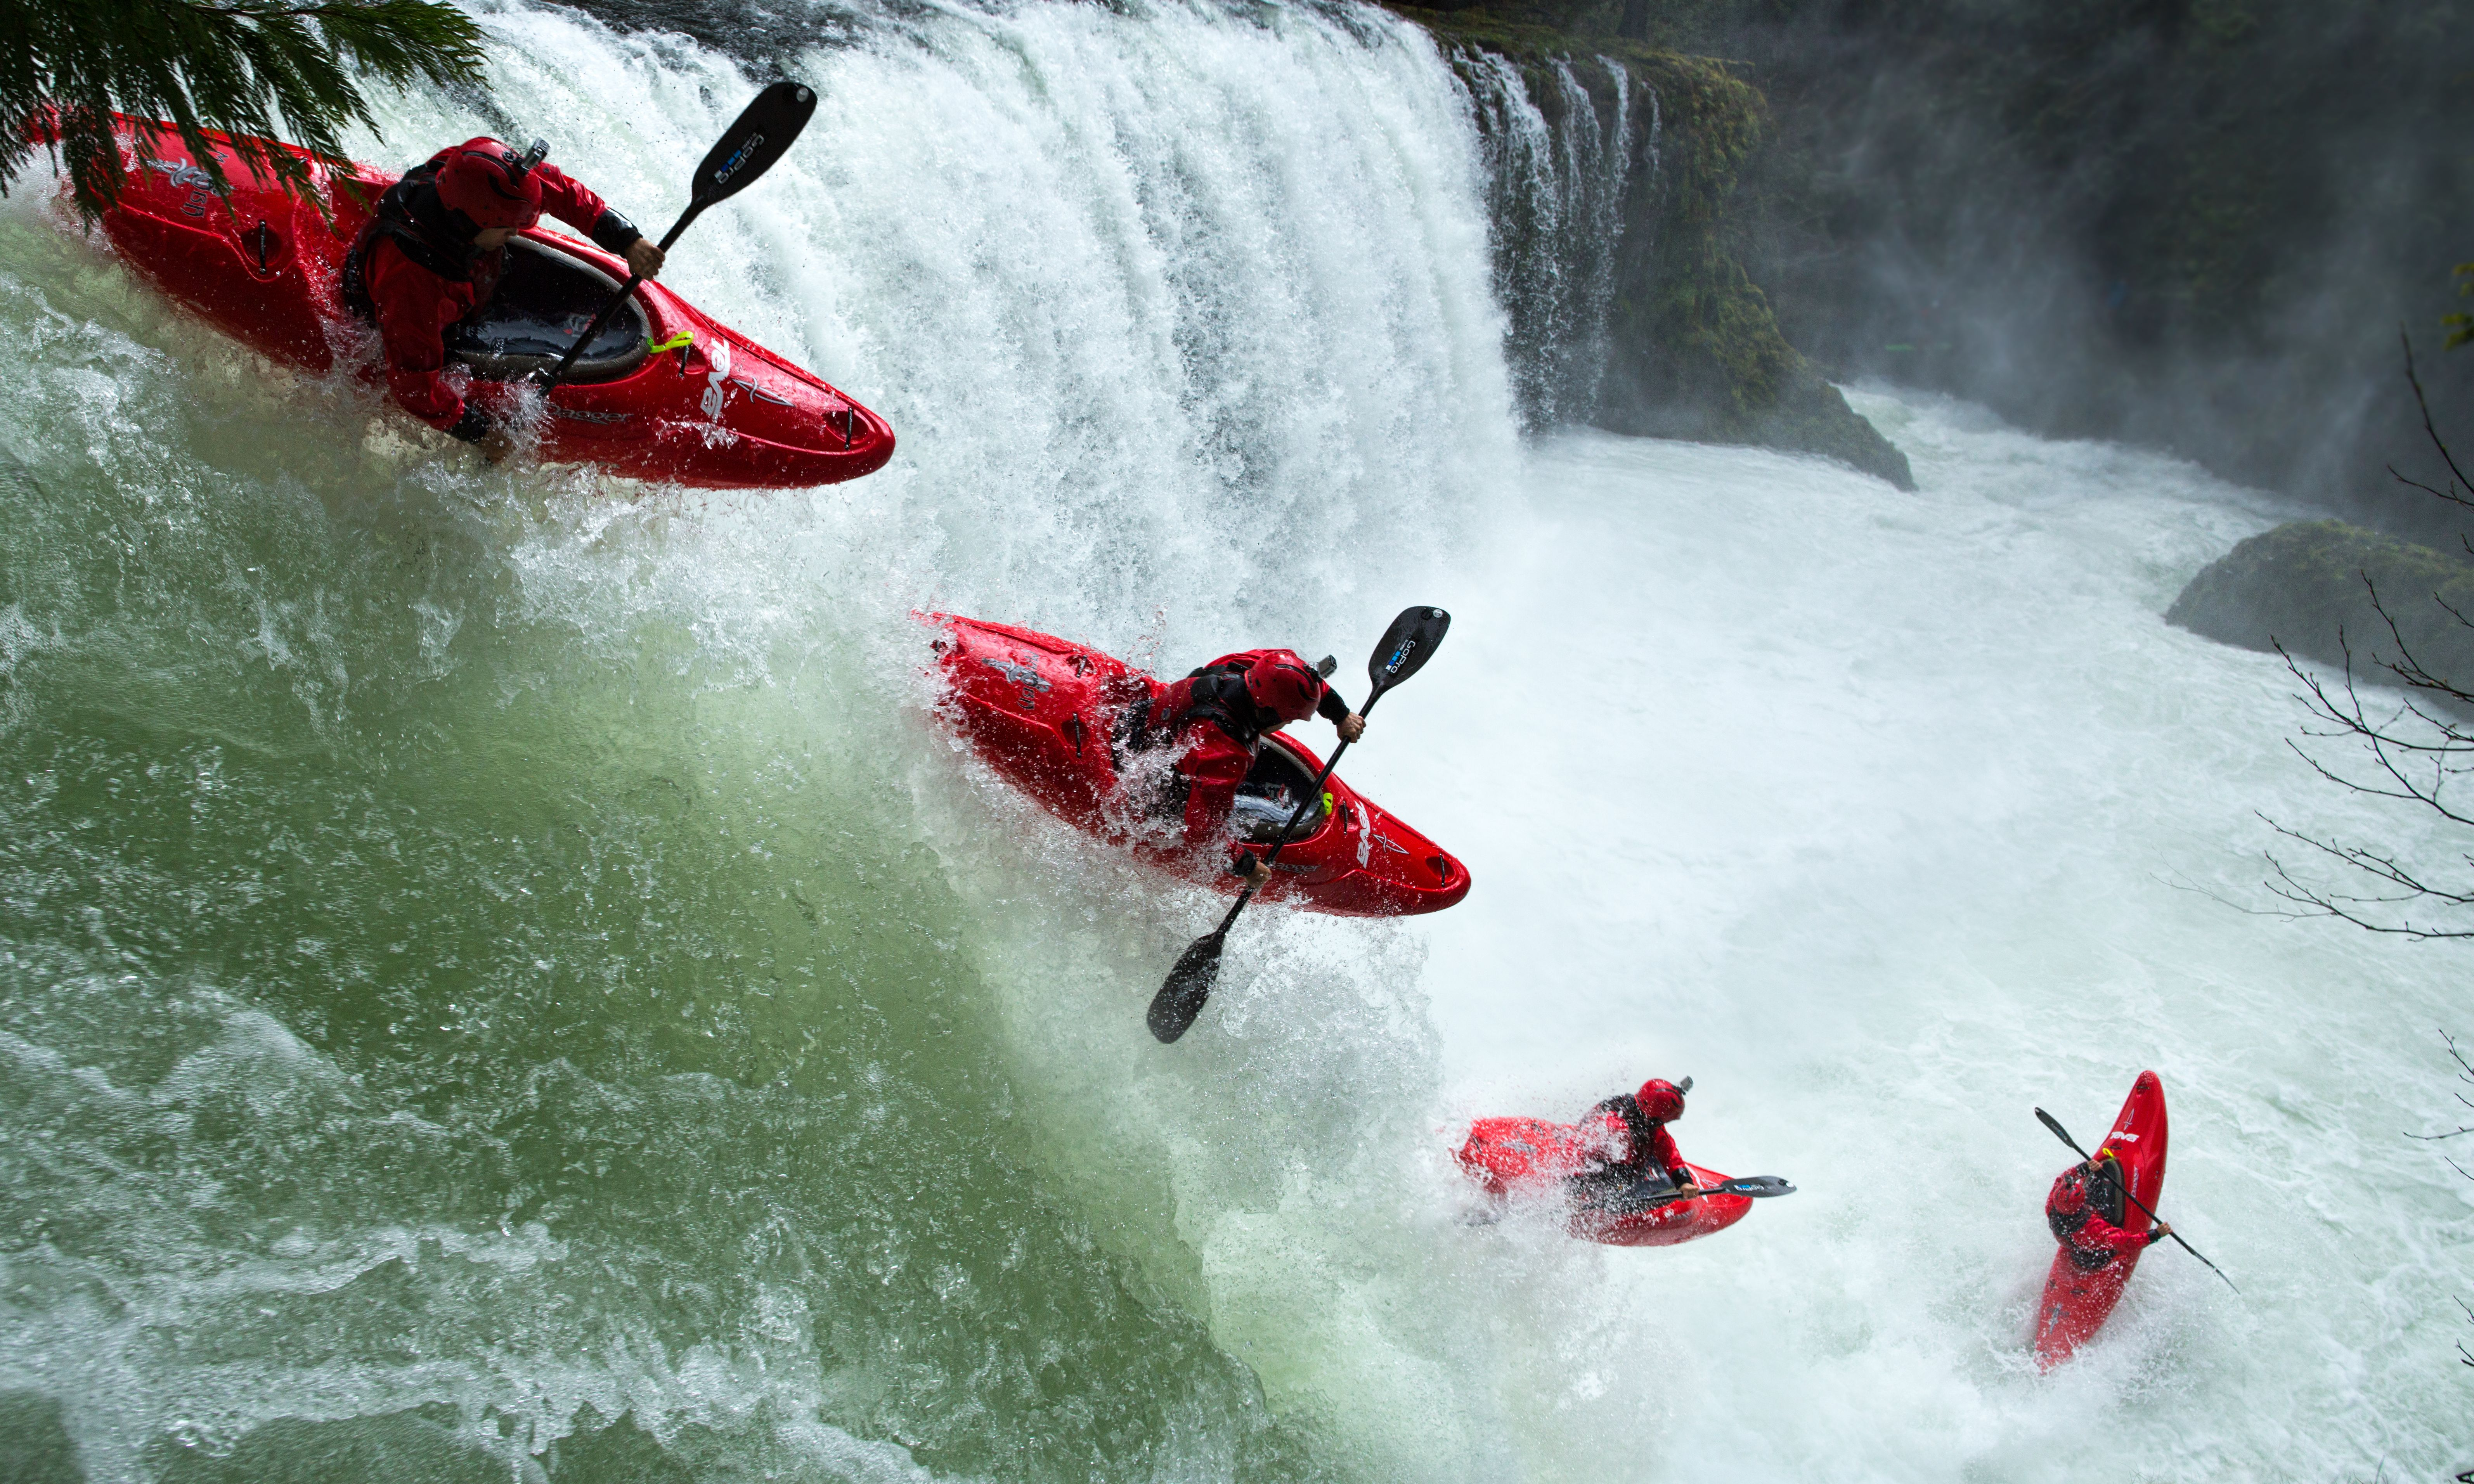 Rush Sturges running Sprit Falls in Washington at the highest flow it has been paddled.